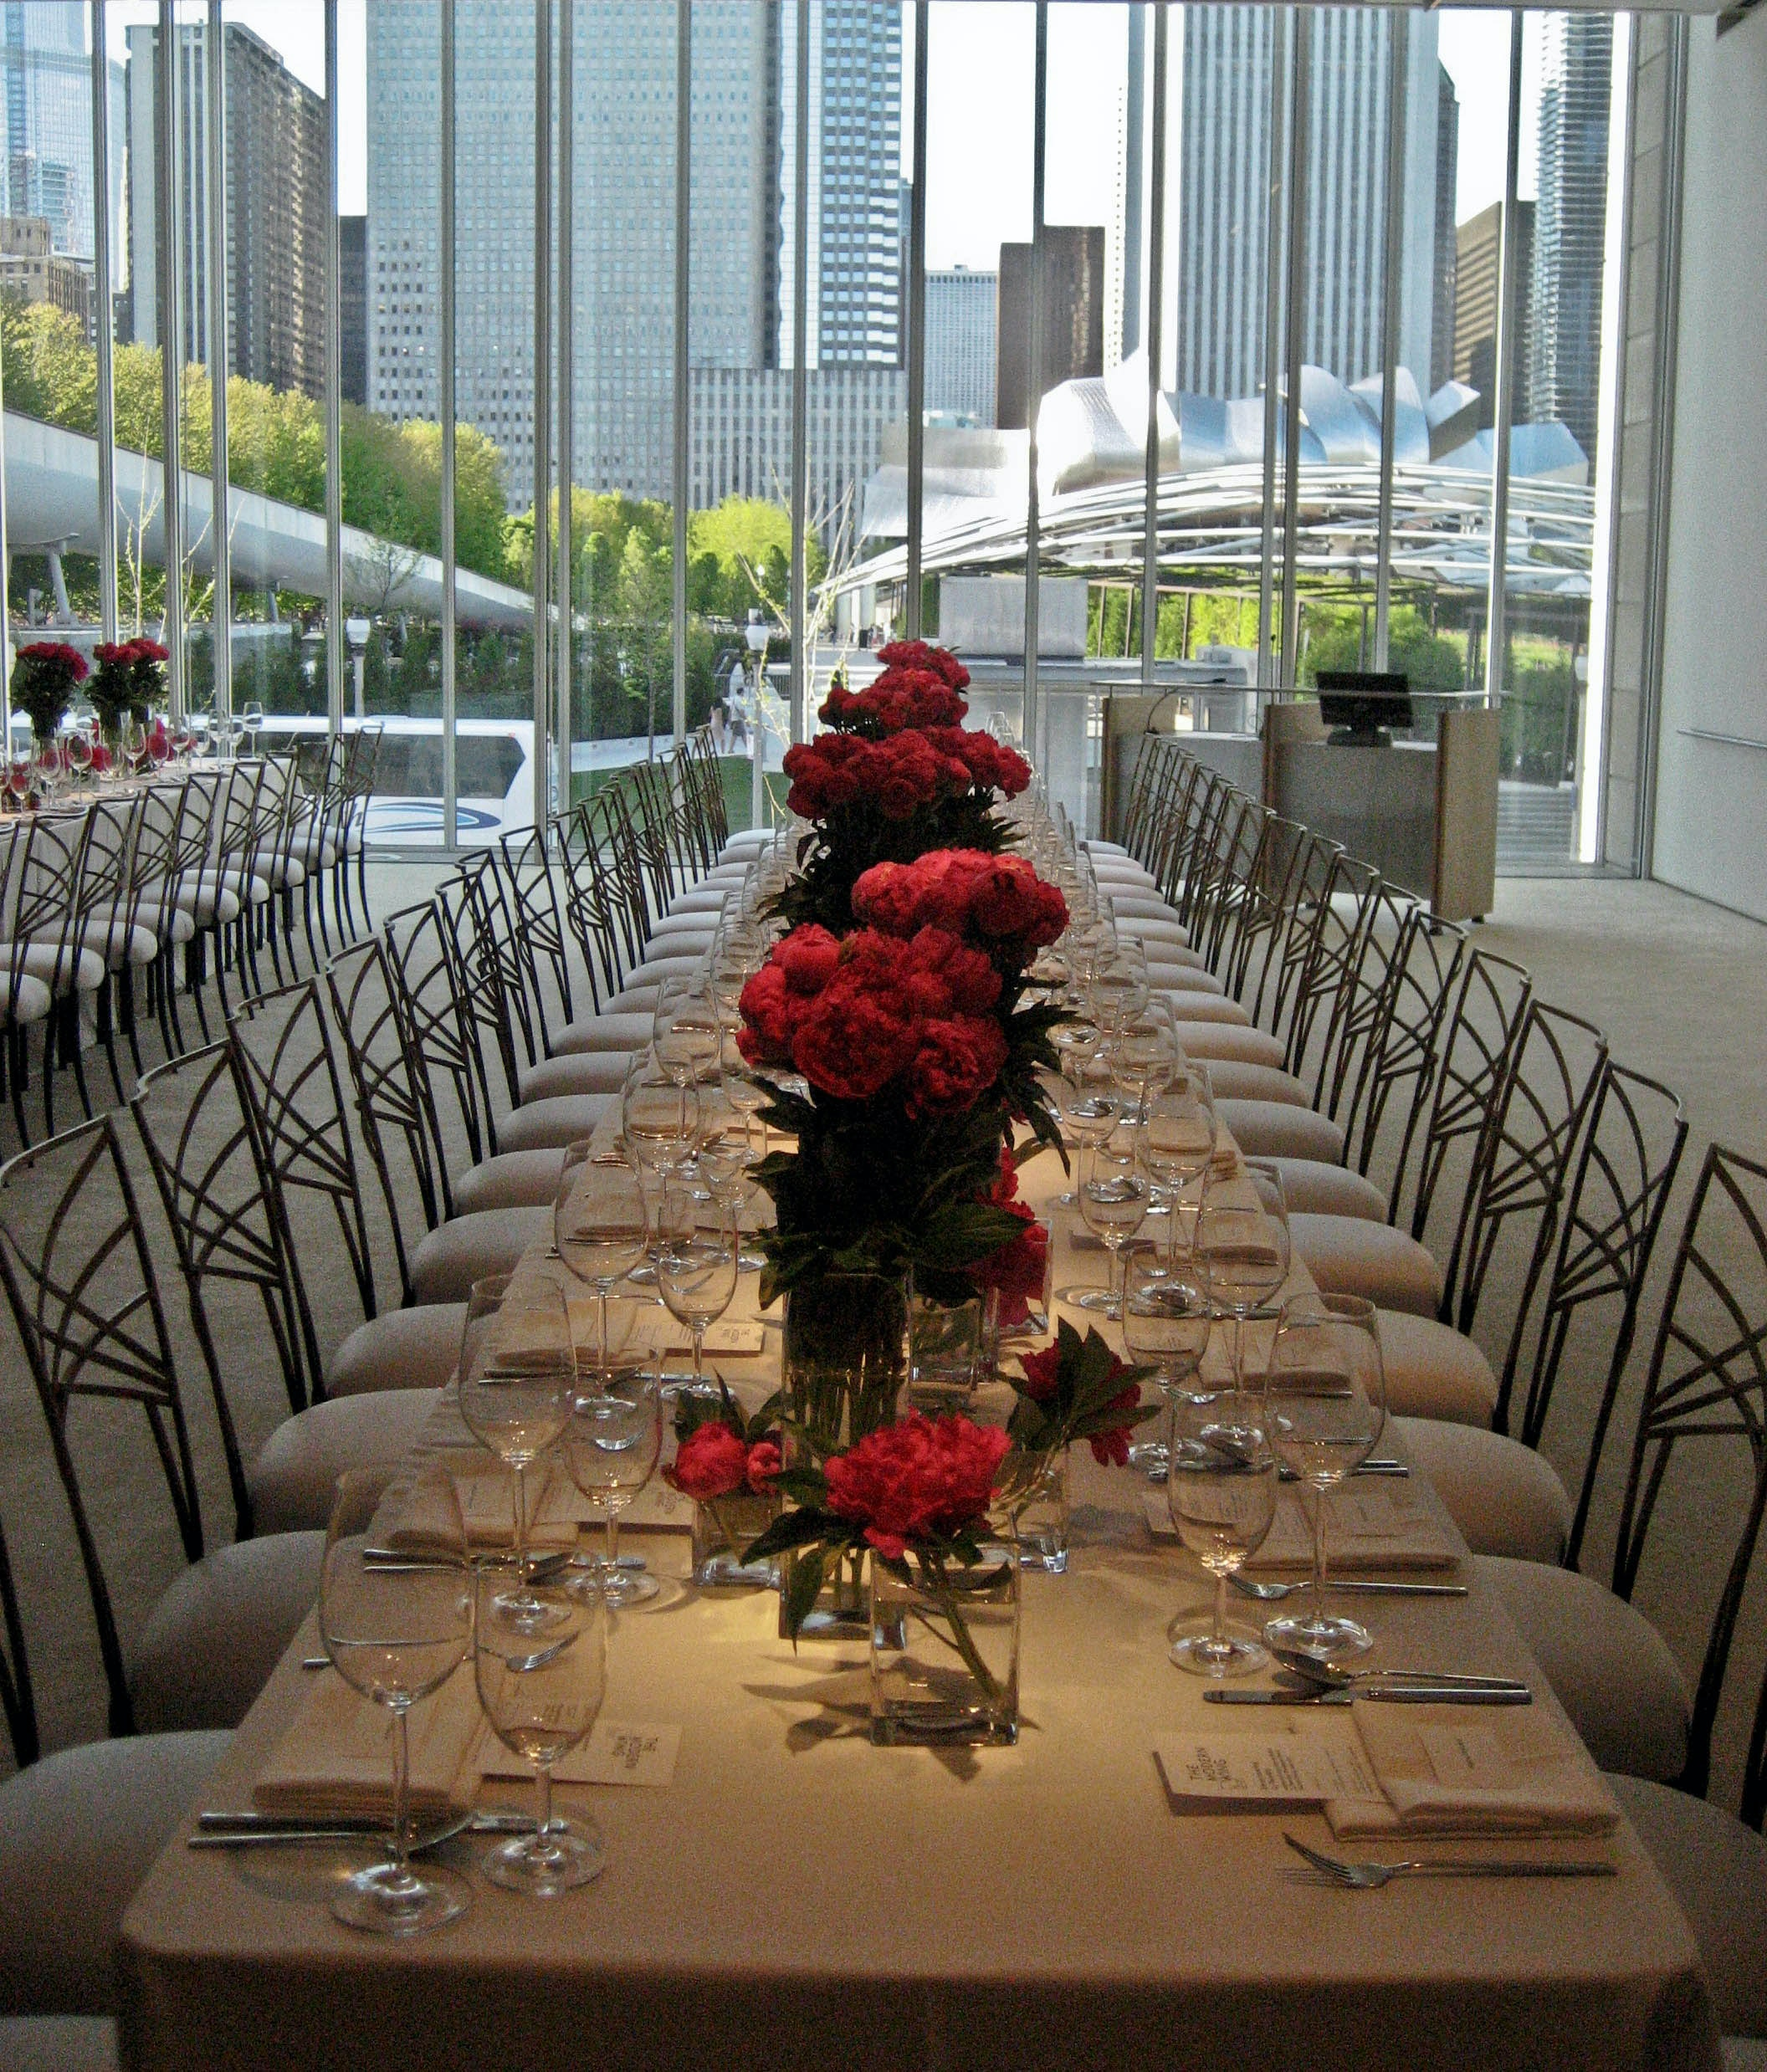 An image of a long set table with red flowers on it overlooking the city of Chicago